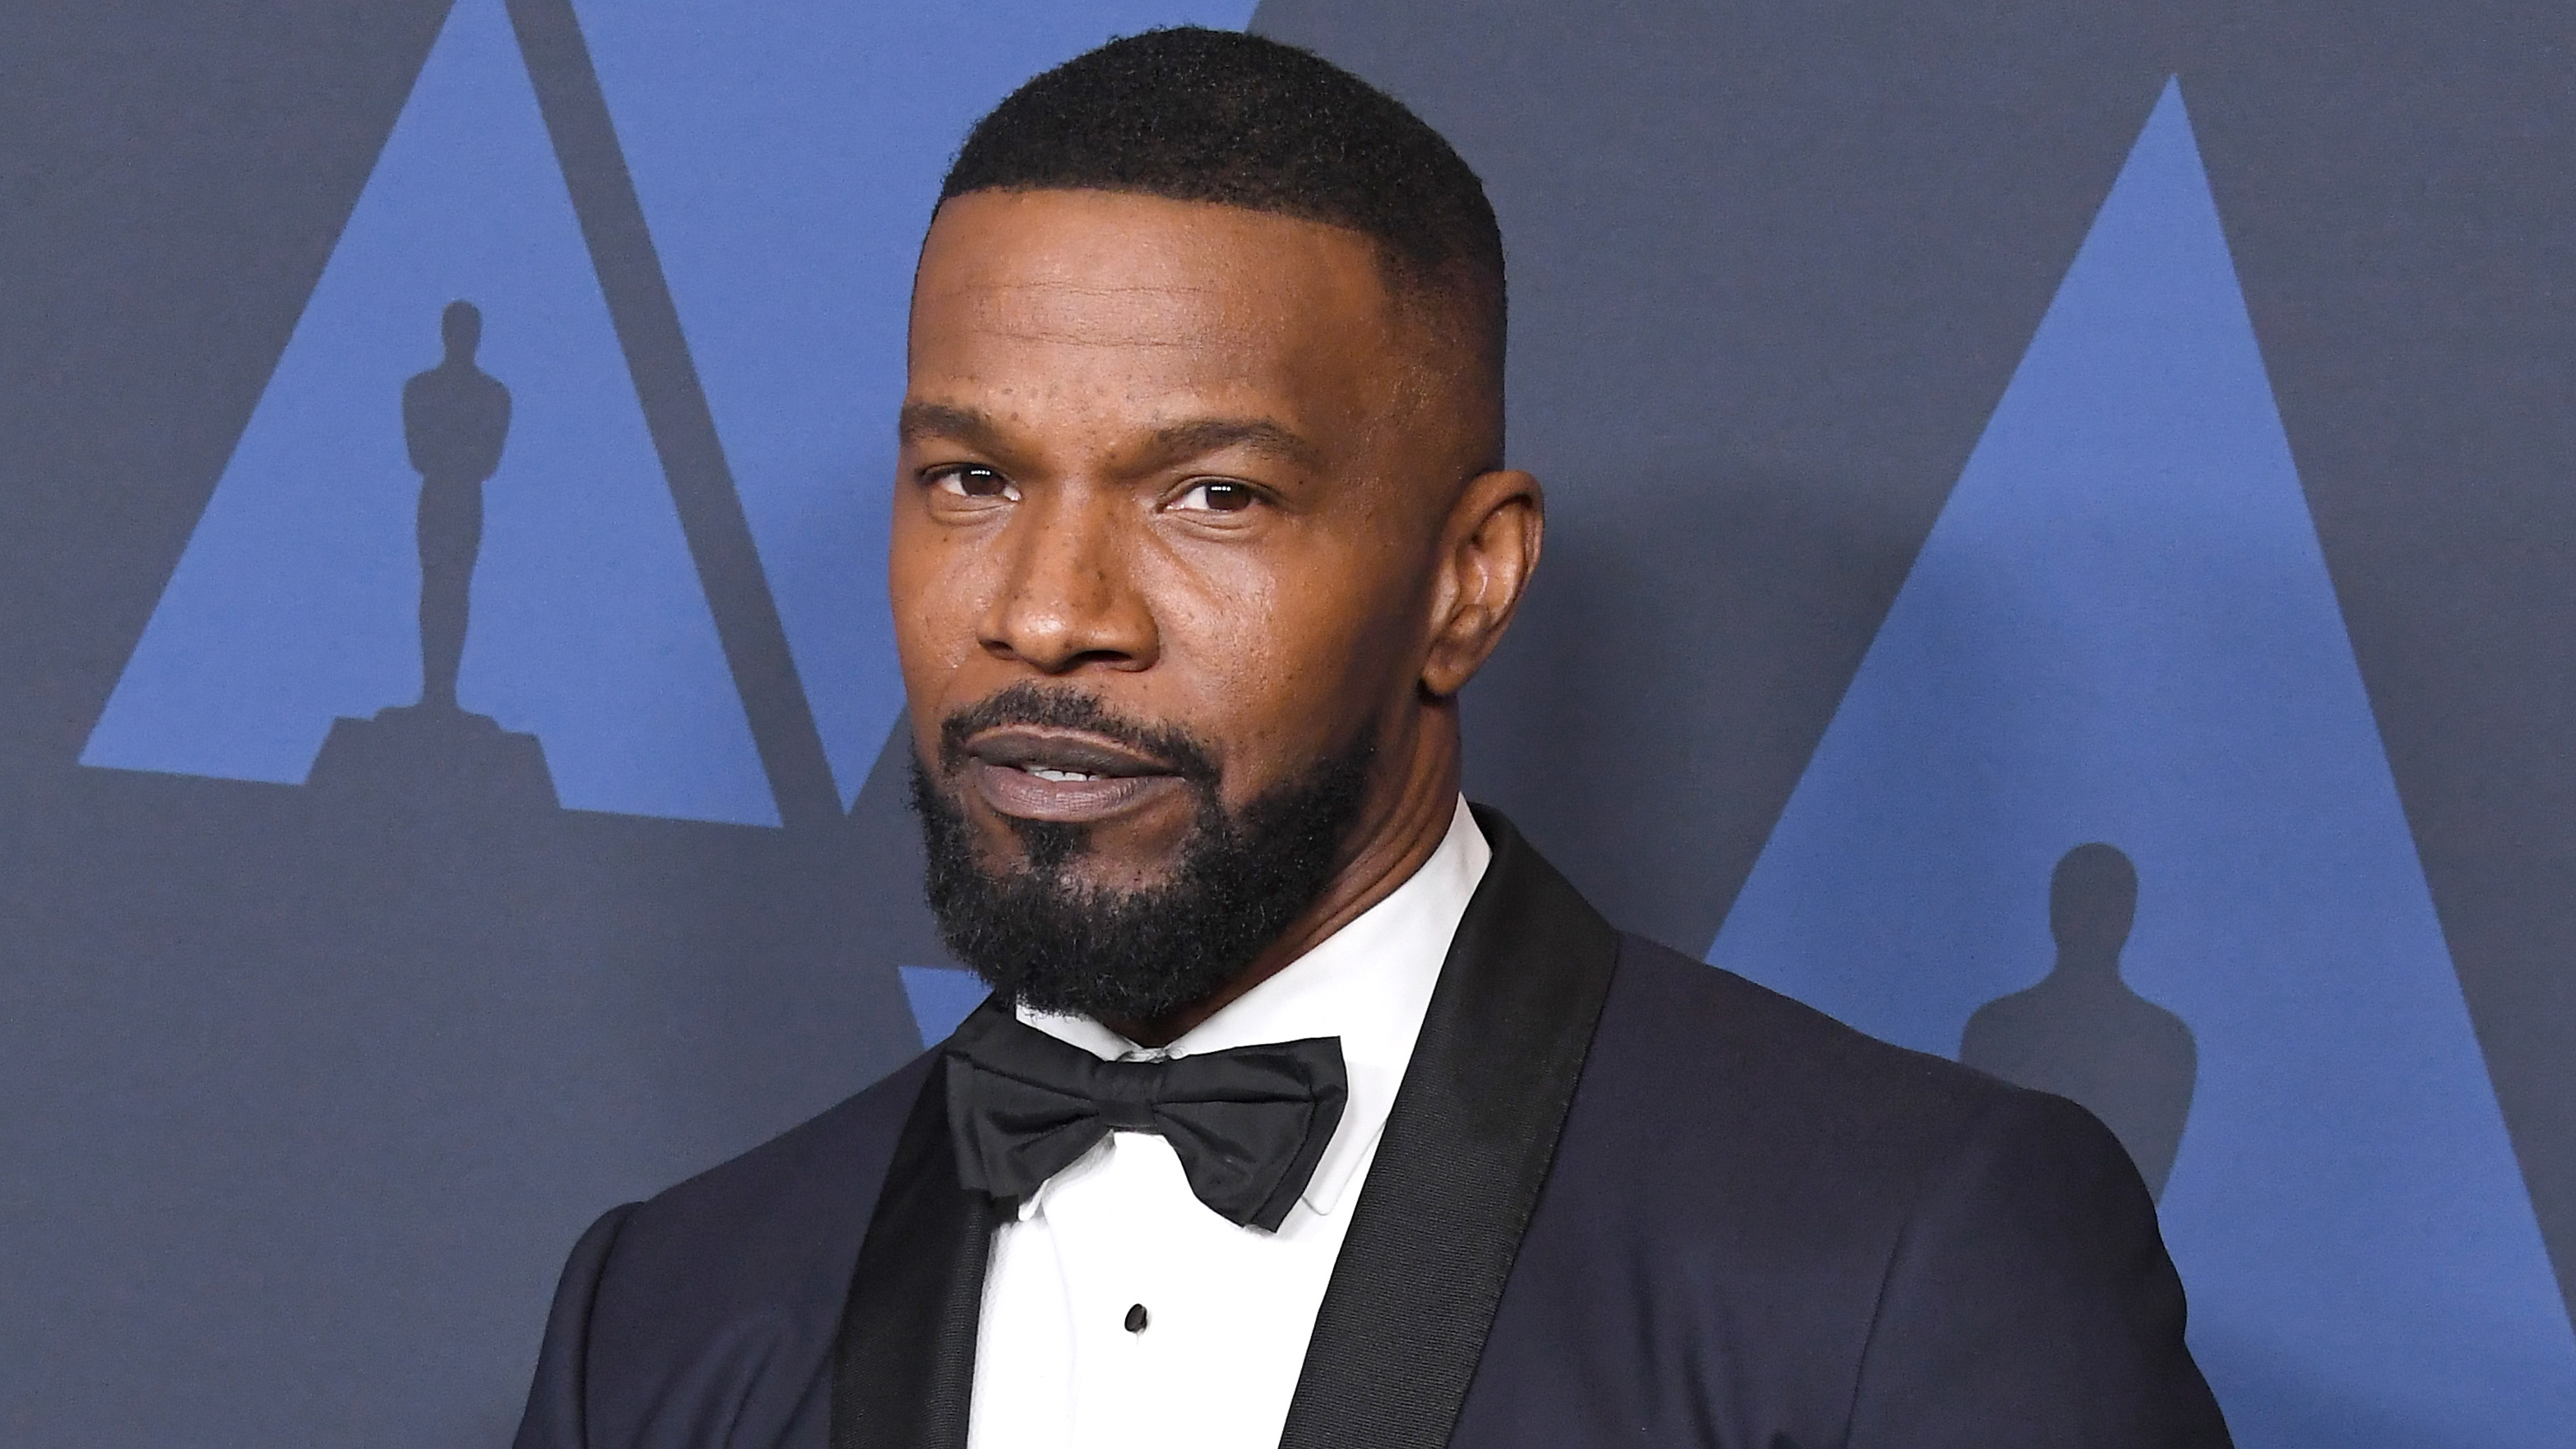 Jamie Foxx confirms mile-high-club status, jokes he's been drunk since his birthday: 'I'm like DiCaprio'